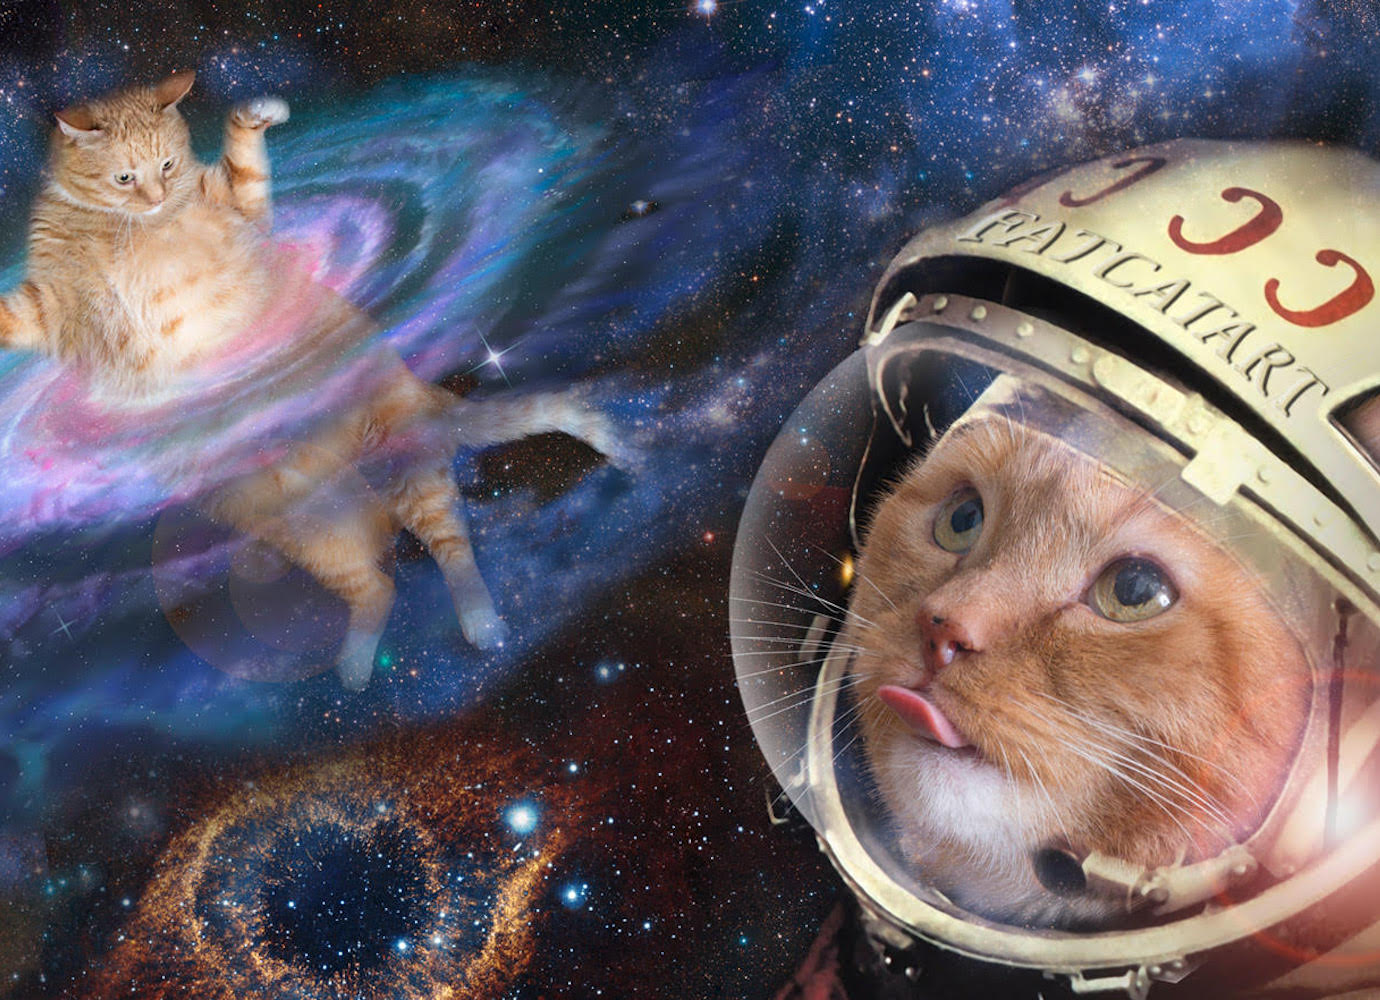 Follow the fat cat that photobombs classic paintings in his adventures across art history